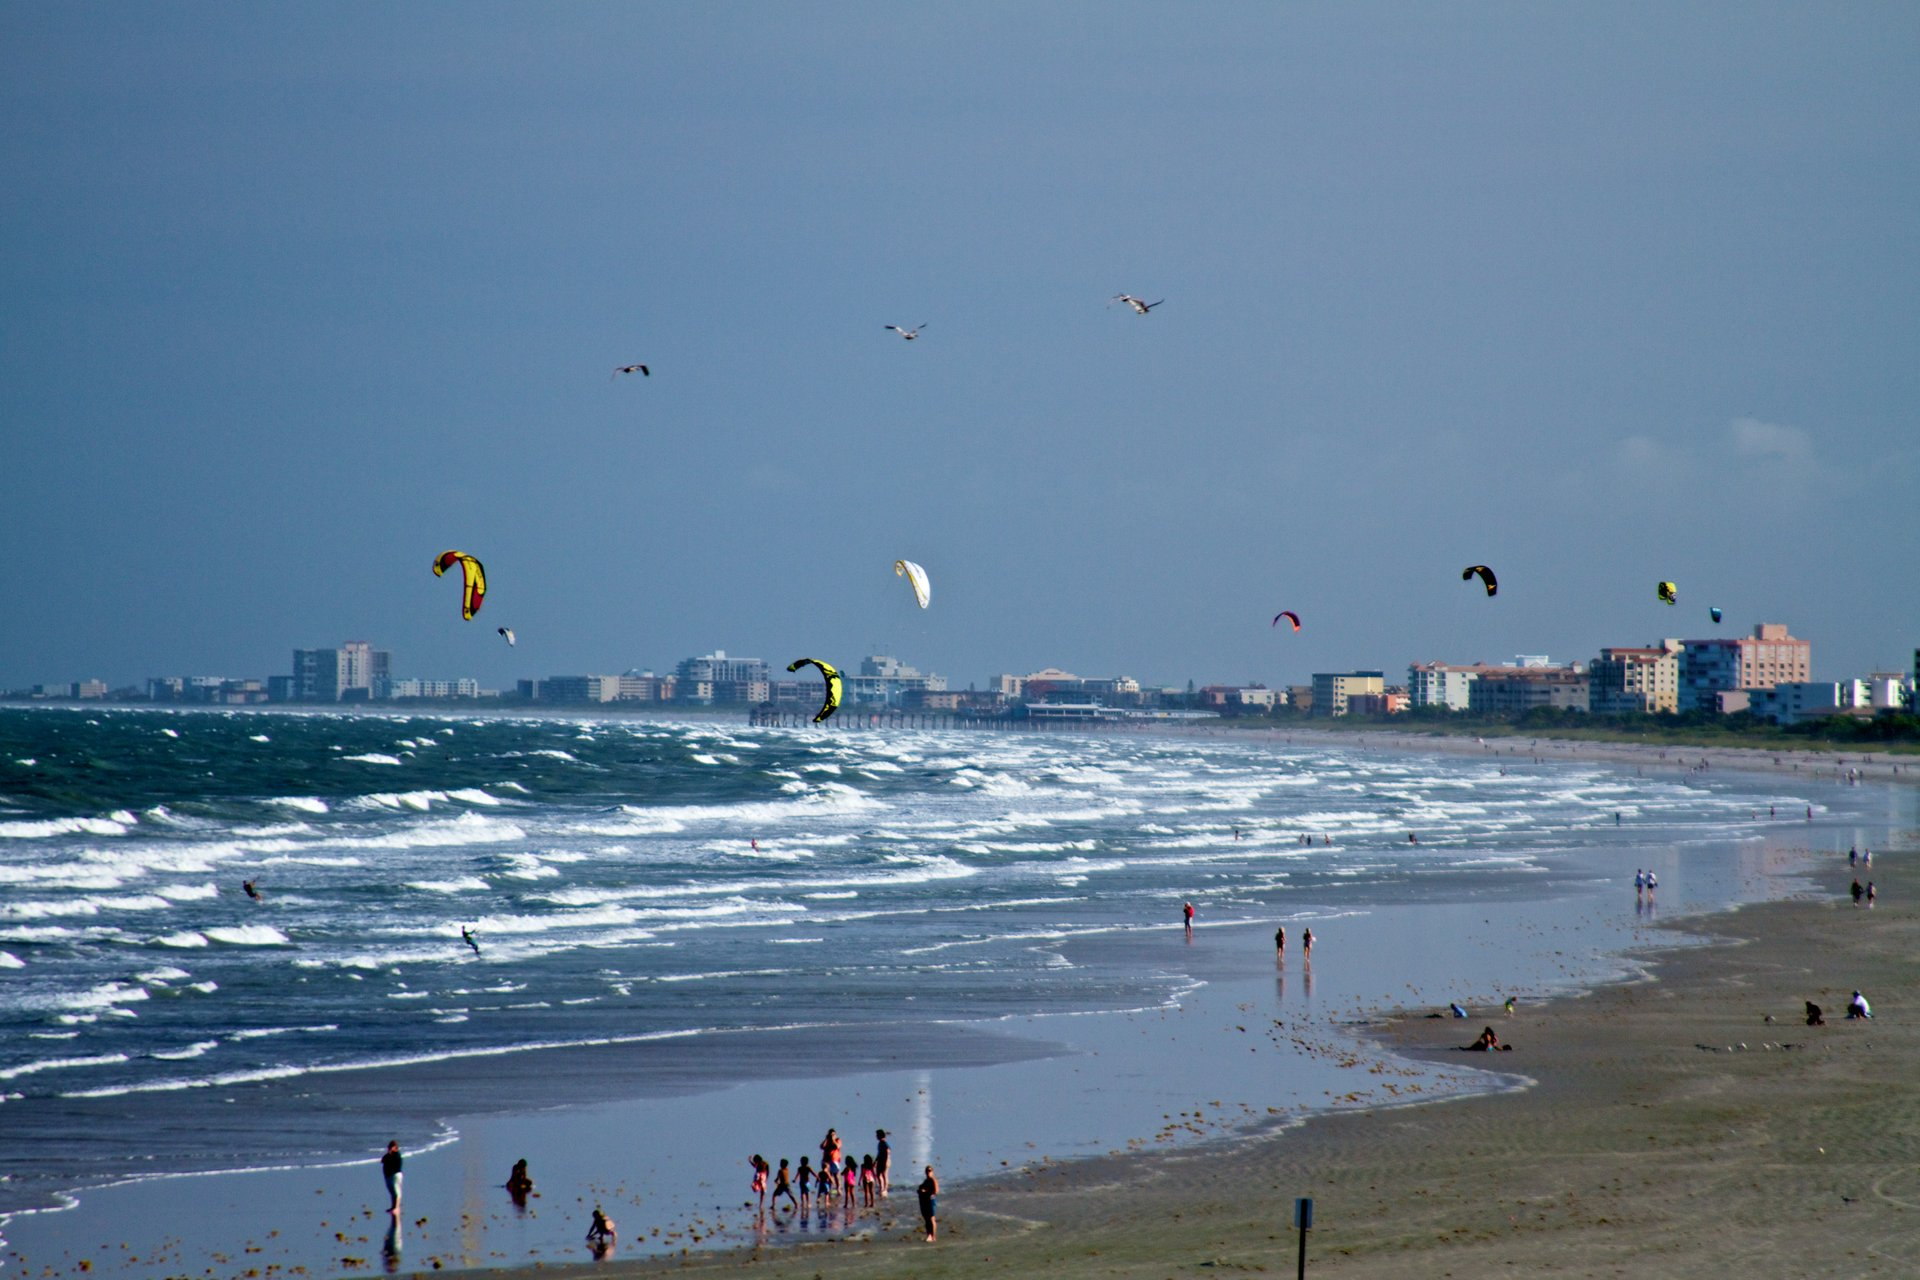 Kiteboarders near Port Canaveral 2020